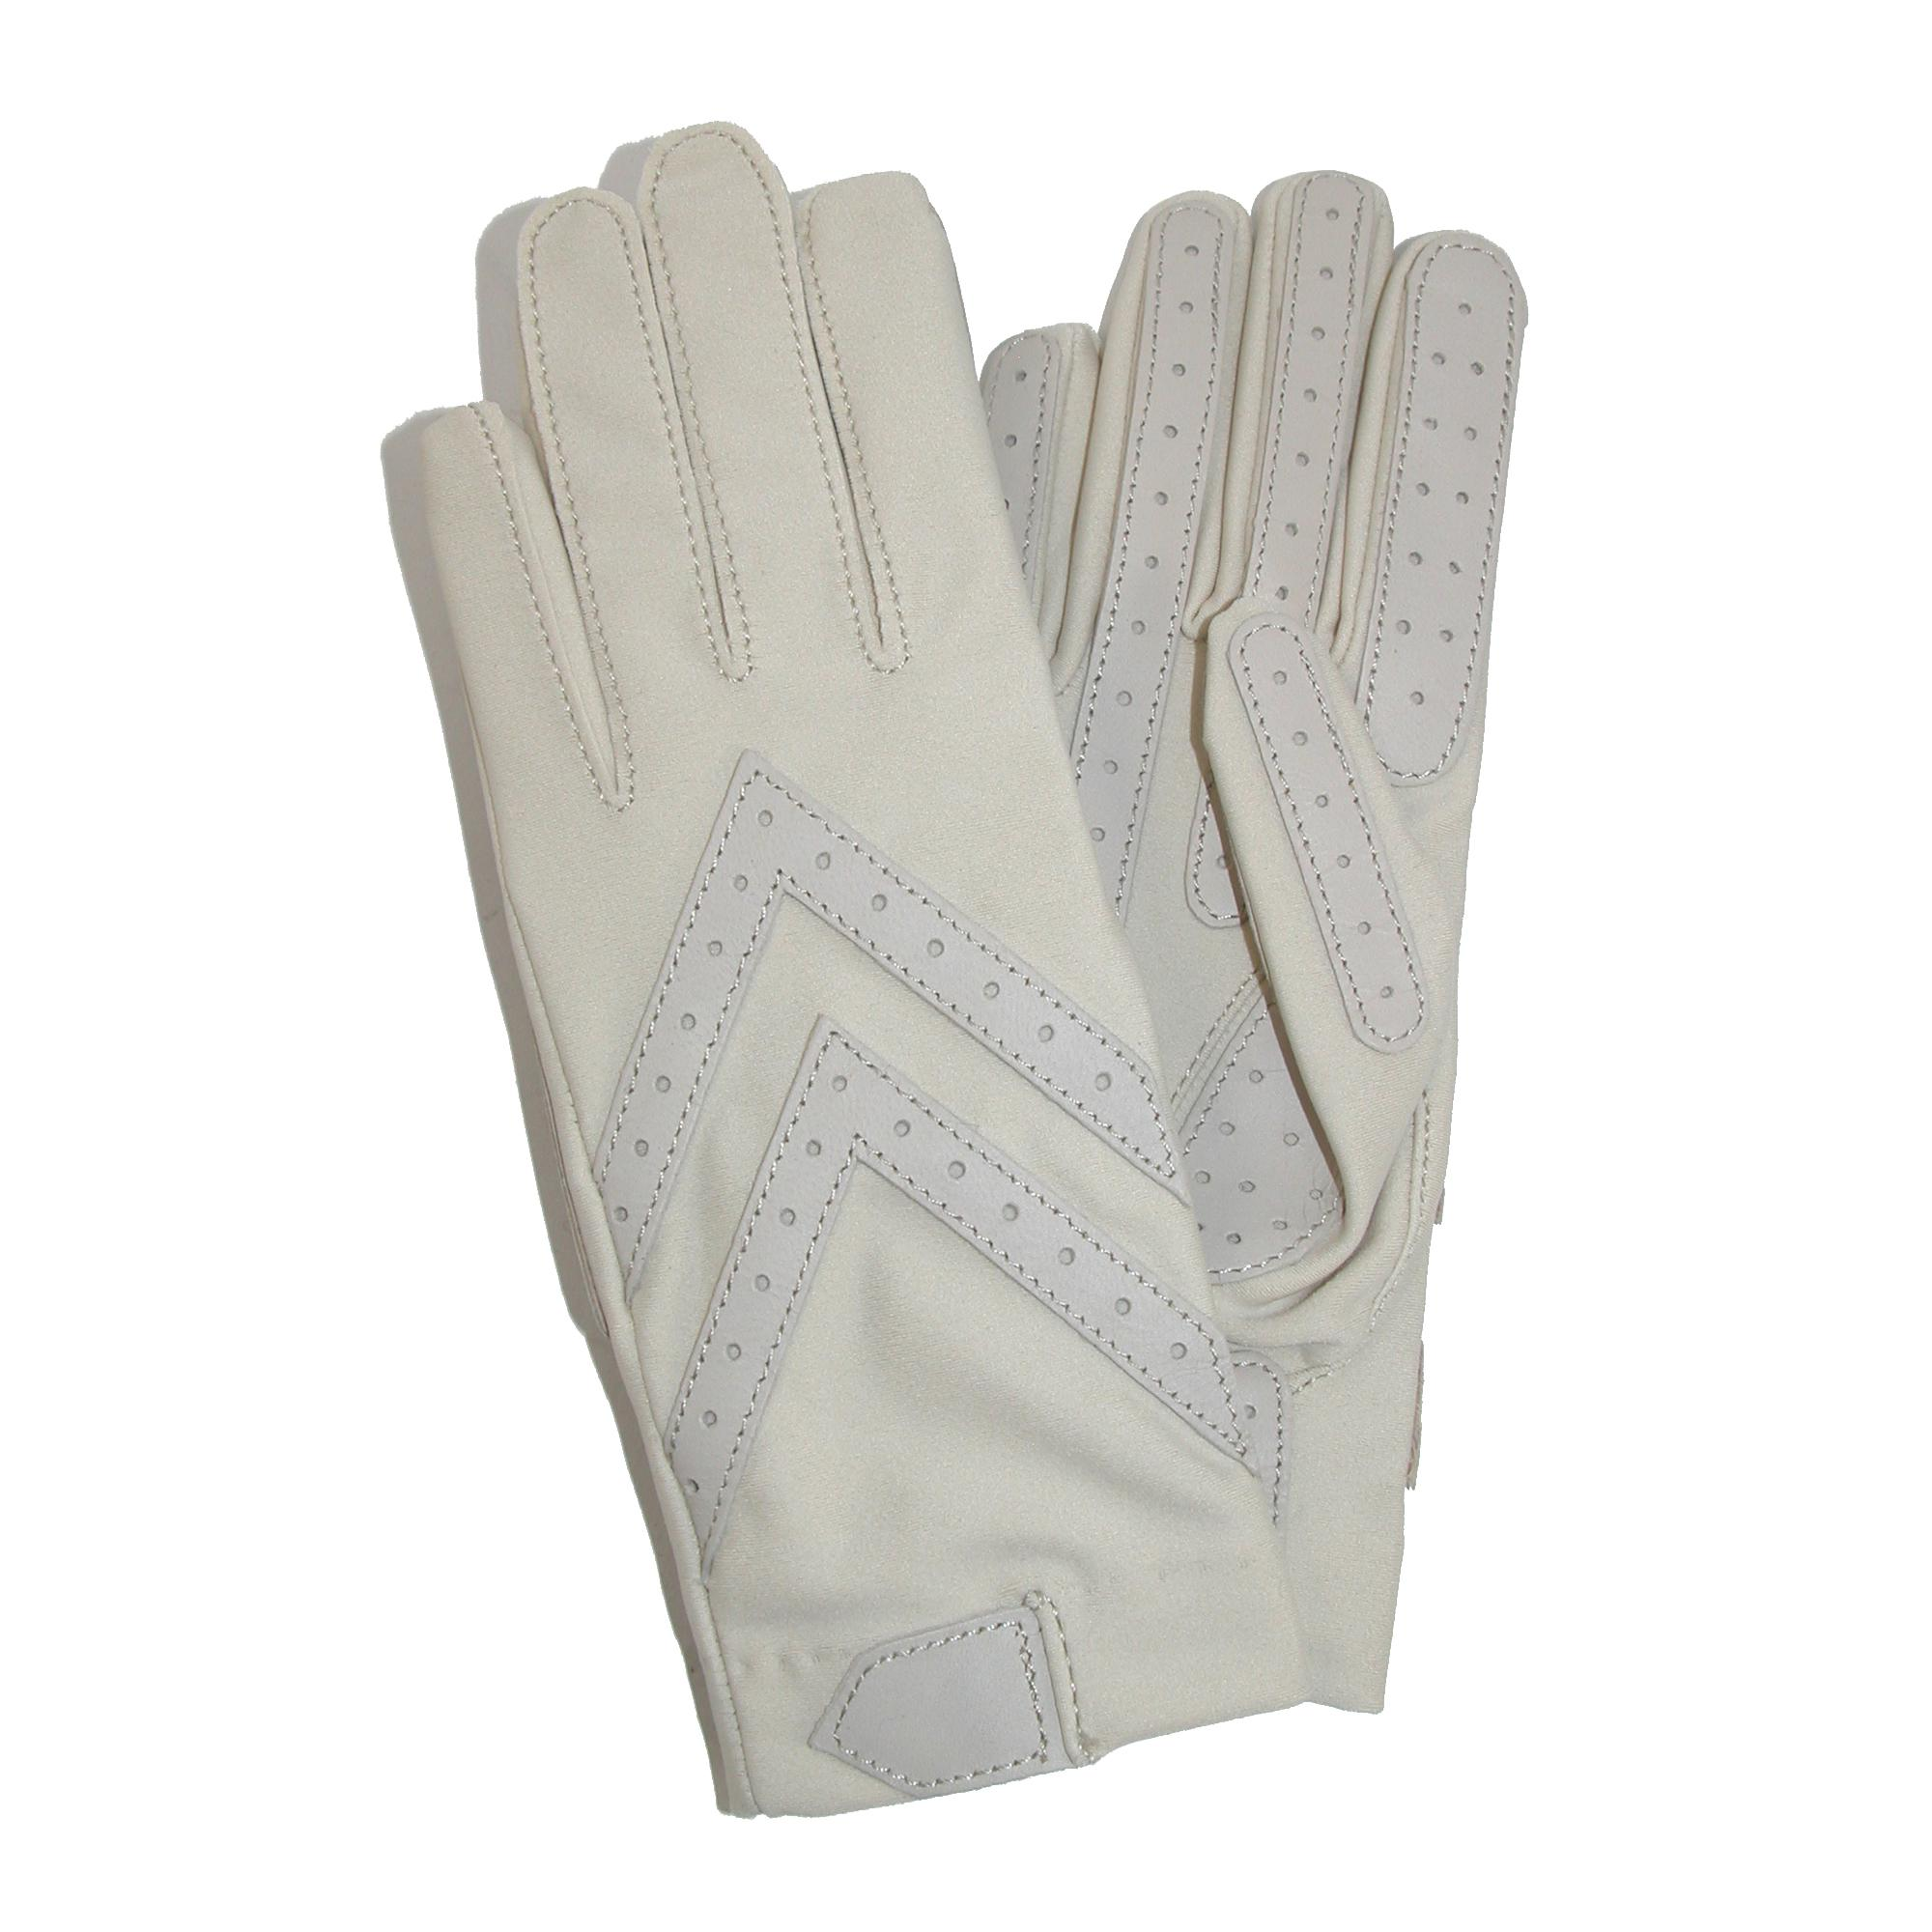 Driving gloves isotoner -  Picture 11 Of 16